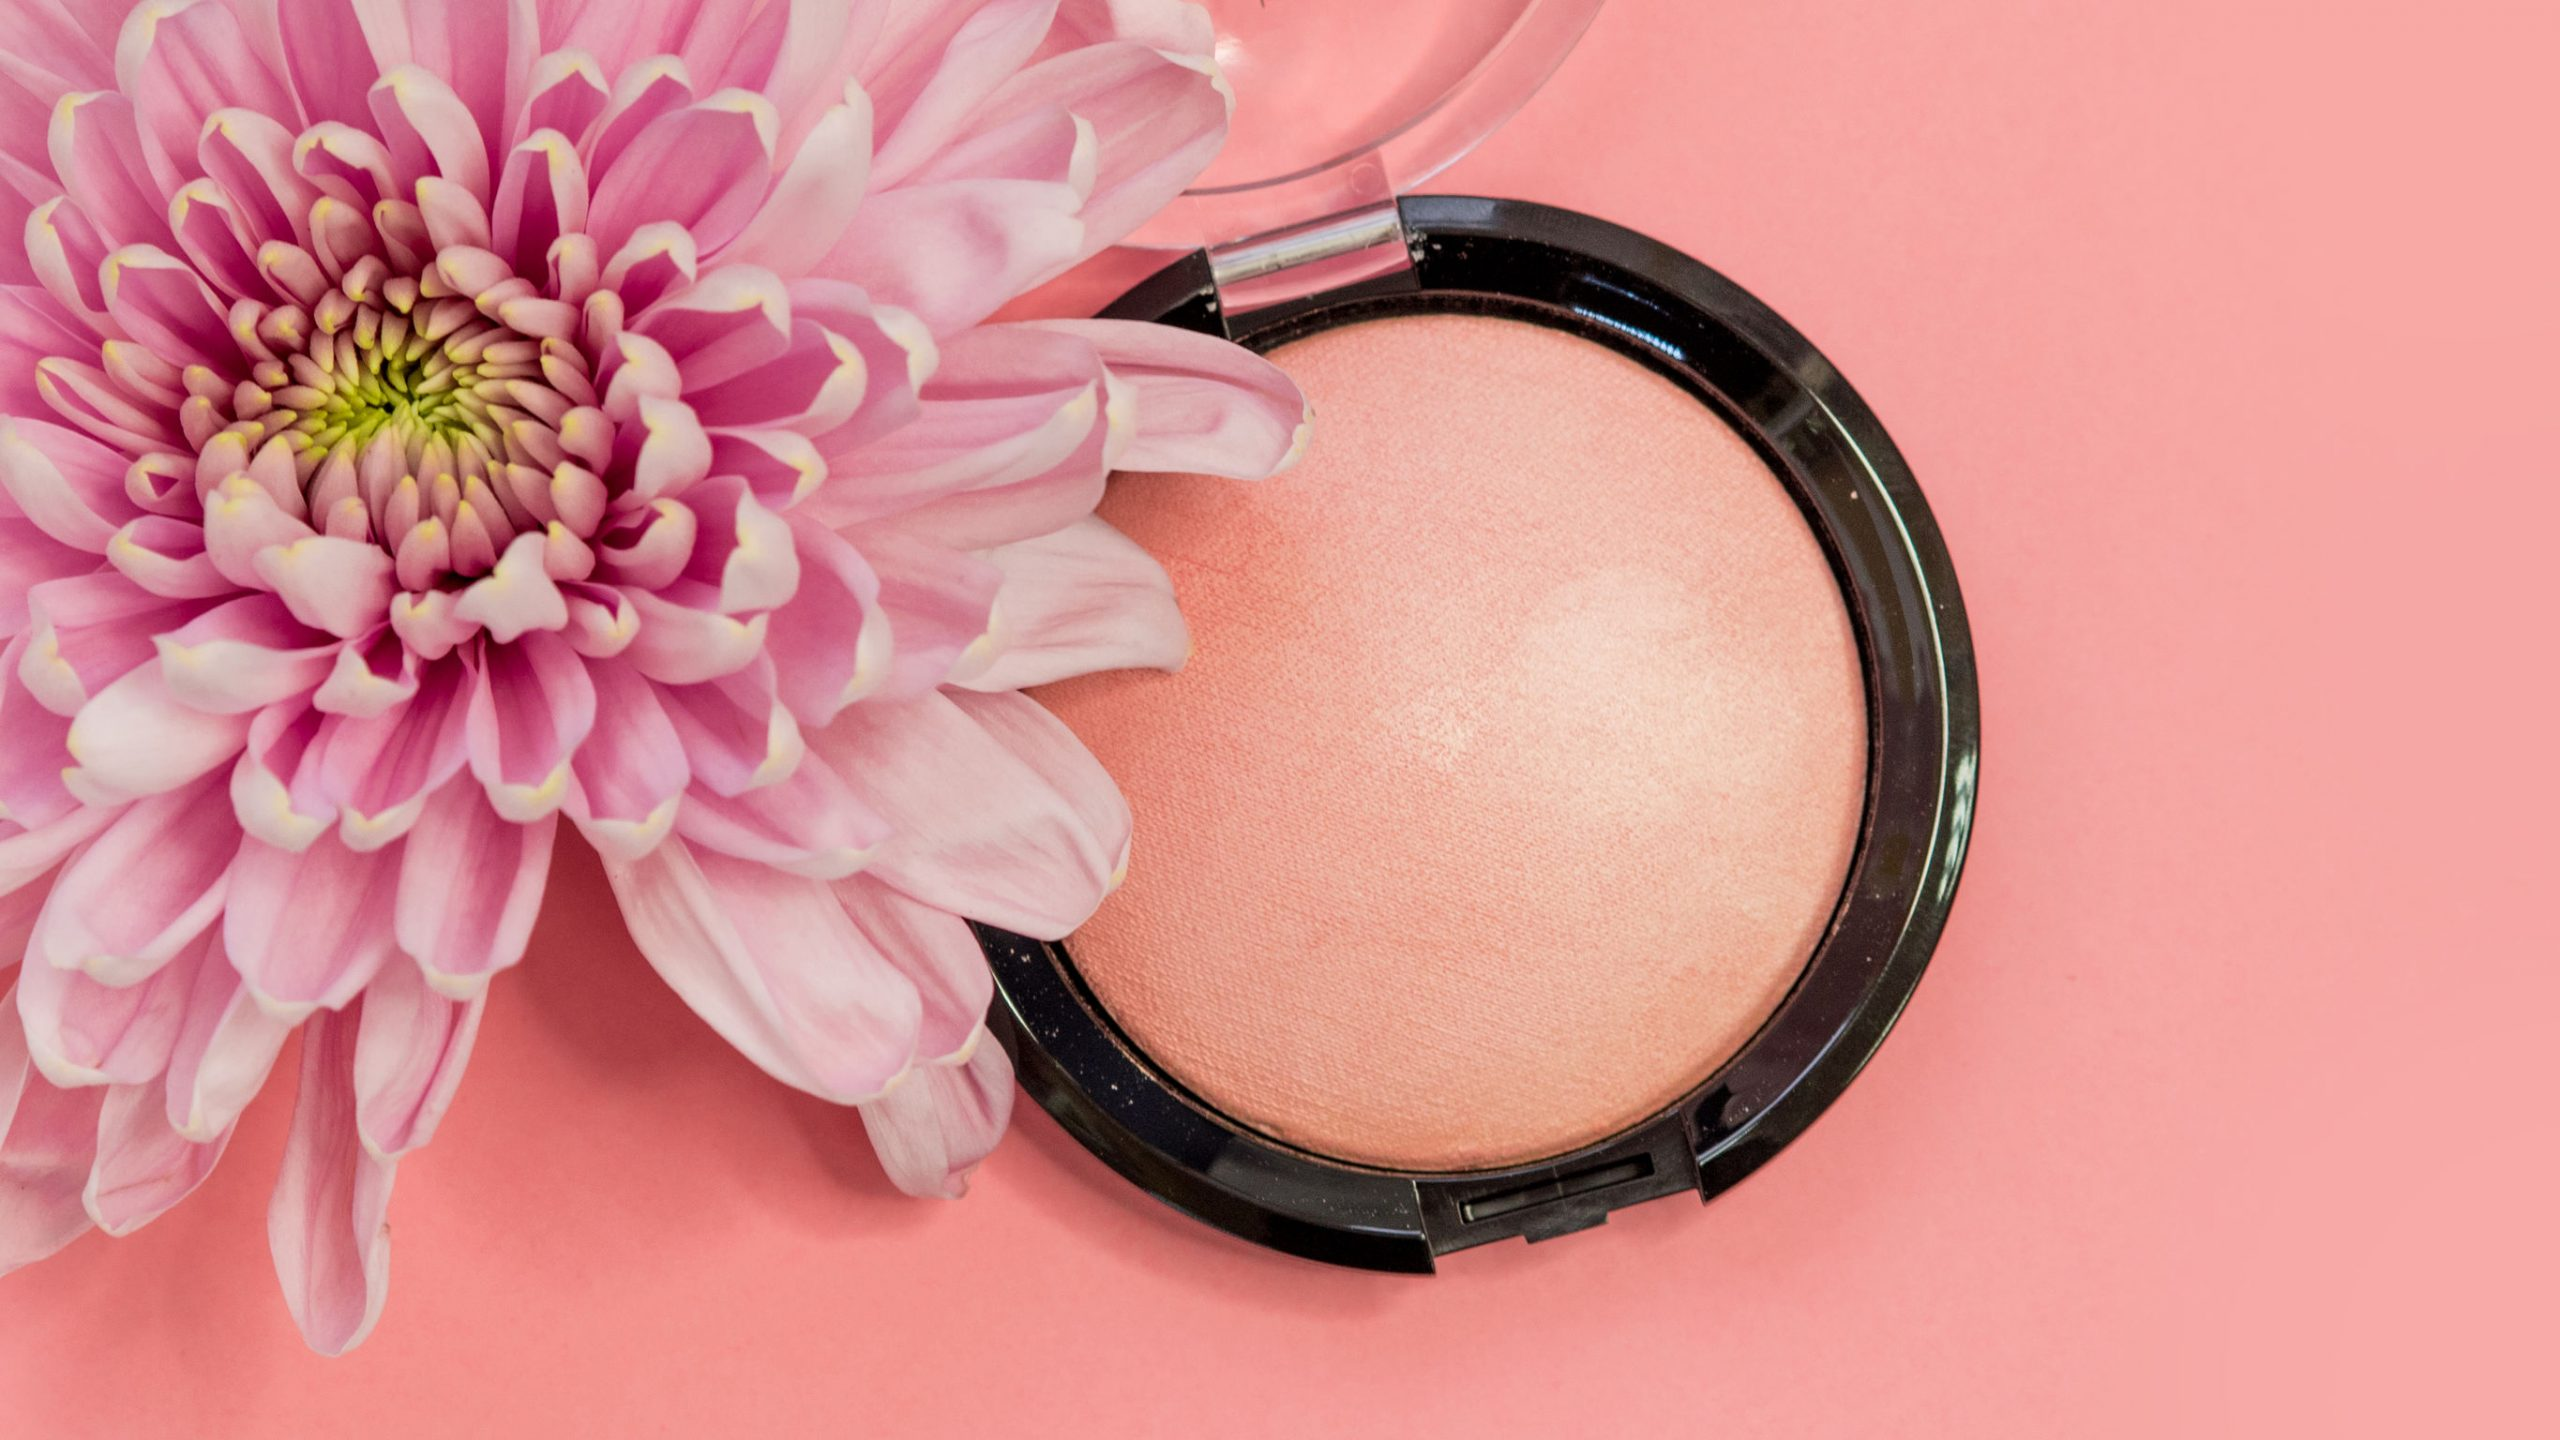 Best Blush 2020: Shopping Guide & Review